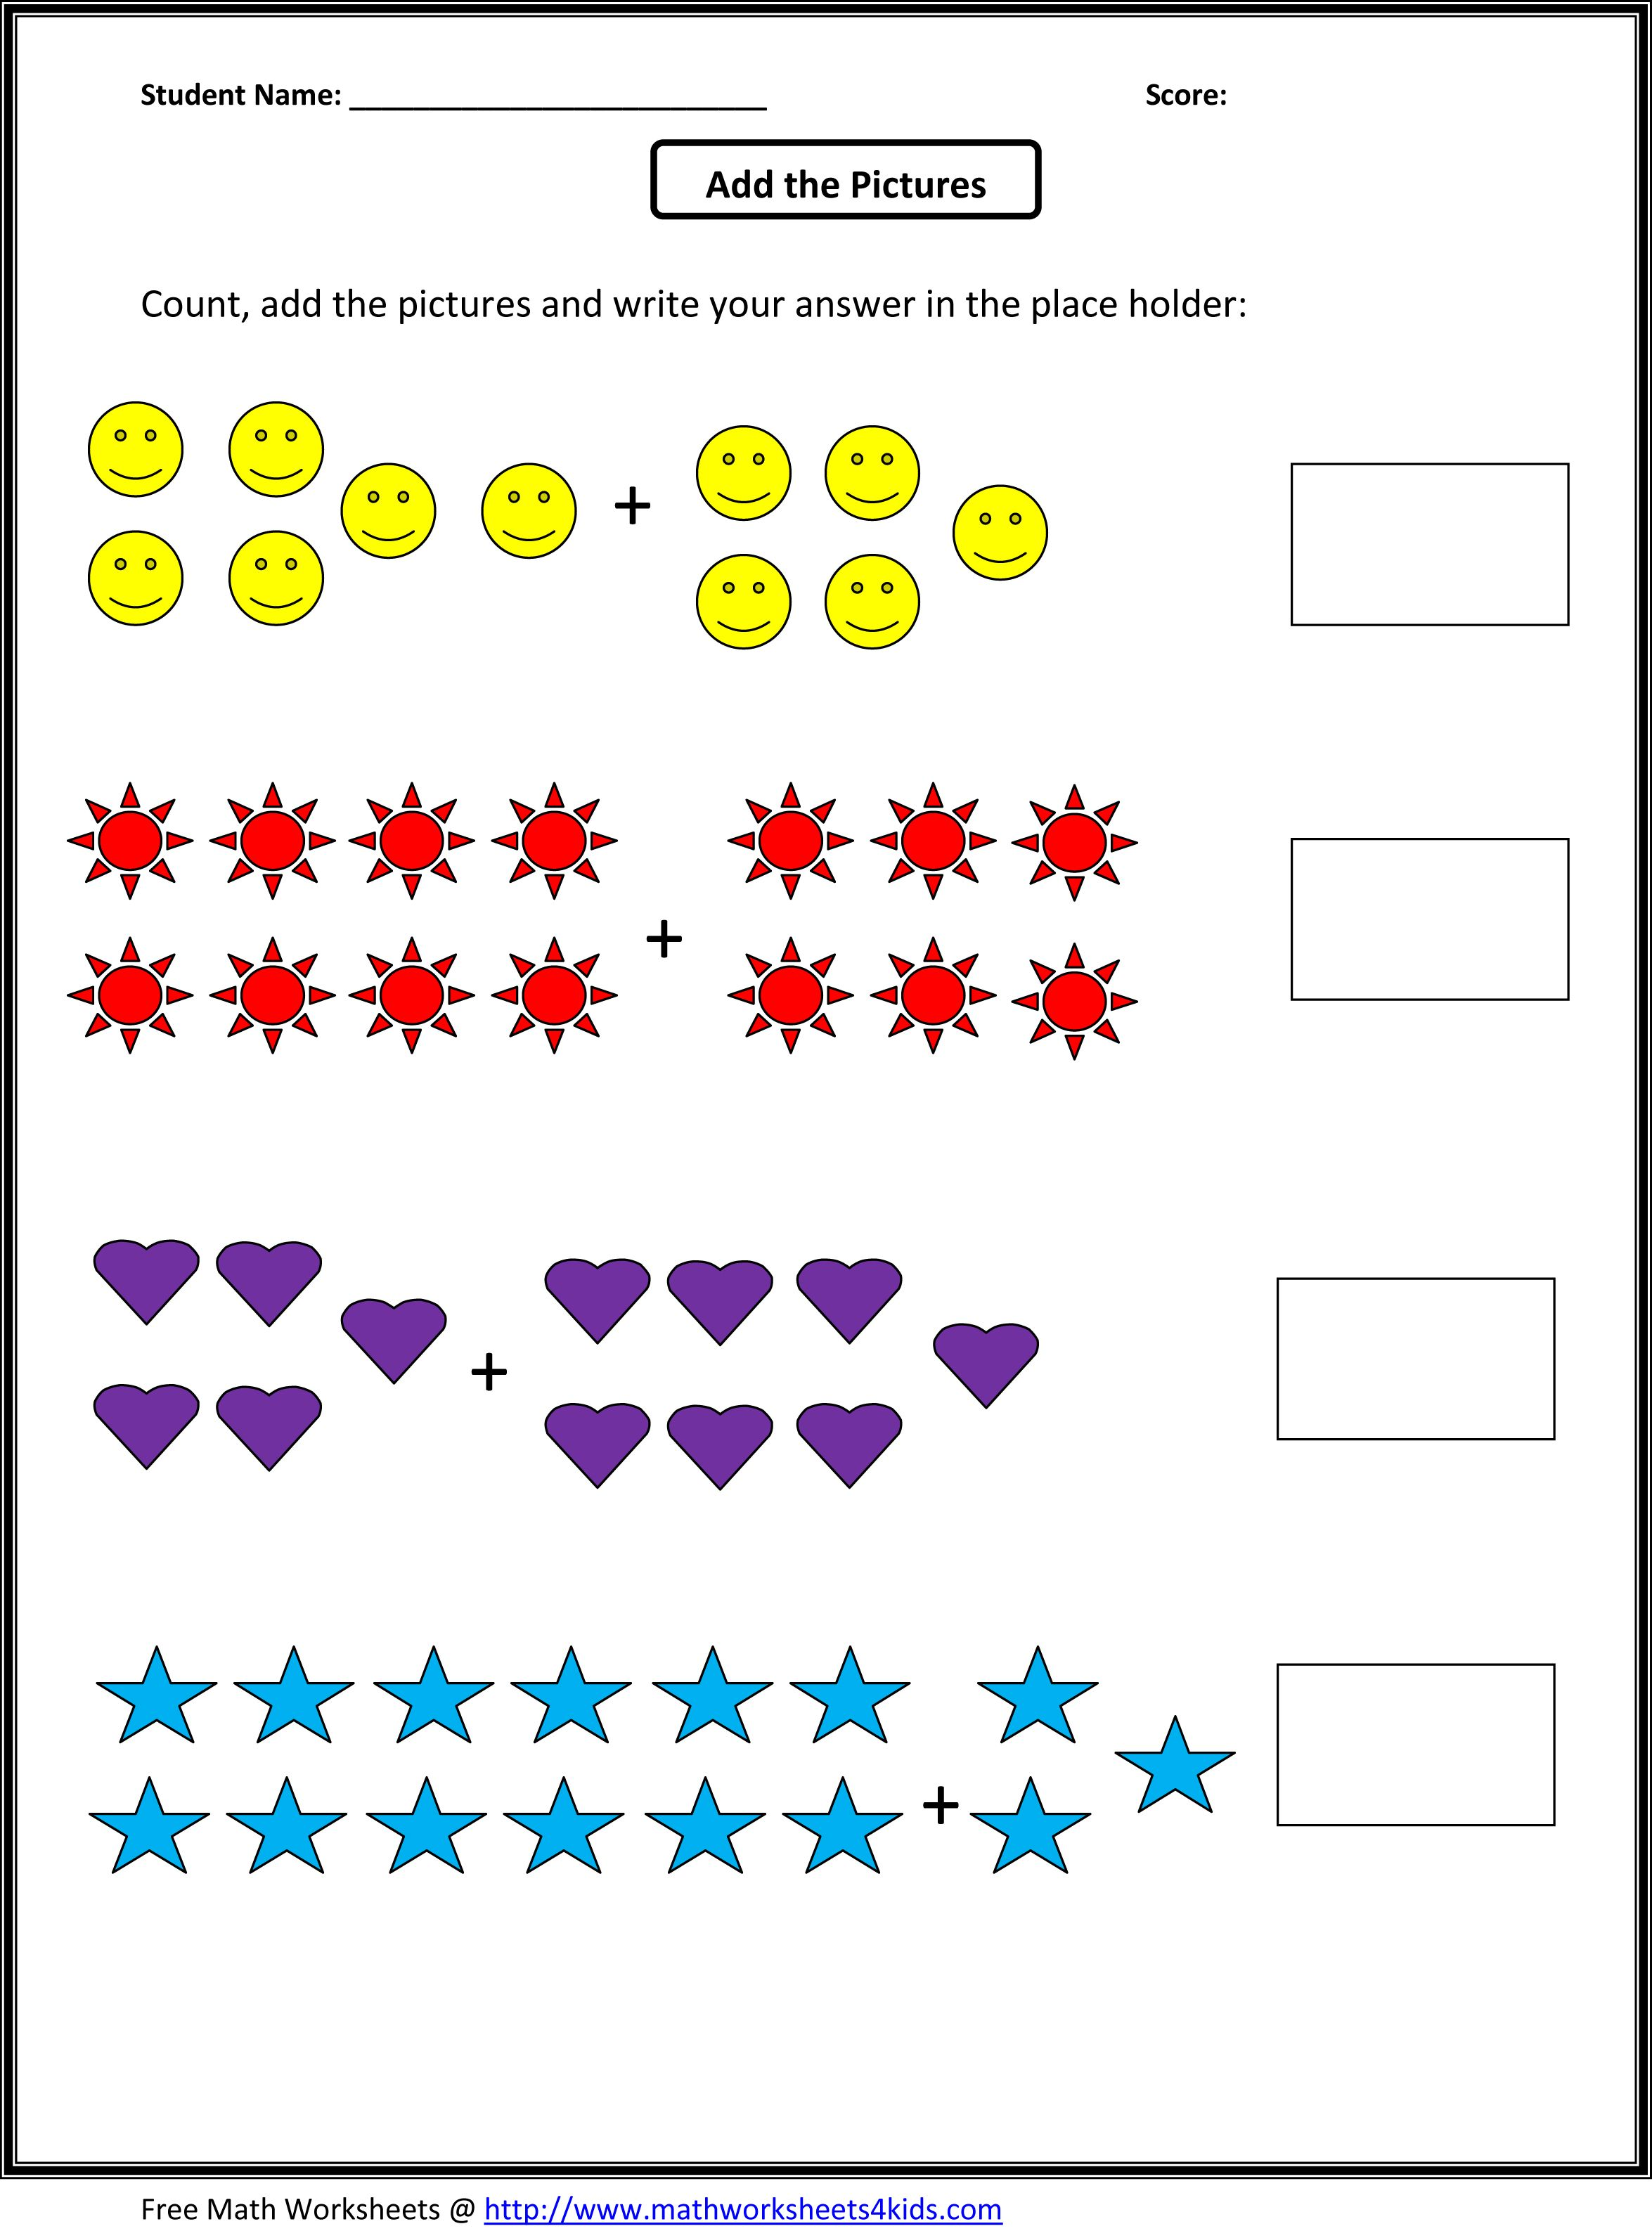 Aldiablosus  Outstanding Worksheet For Math Grade   Coffemix With Remarkable  Images About School On Pinterest  Mental Maths Worksheets  With Charming  Digit By  Digit Division Worksheets Also To Be Verbs Worksheets In Addition Interest Rate Reduction Refinancing Loan Worksheet And D Shapes Worksheets Ks As Well As Counting Dots Worksheets Additionally Sequencing Worksheets Grade  From Coffemixcom With Aldiablosus  Remarkable Worksheet For Math Grade   Coffemix With Charming  Images About School On Pinterest  Mental Maths Worksheets  And Outstanding  Digit By  Digit Division Worksheets Also To Be Verbs Worksheets In Addition Interest Rate Reduction Refinancing Loan Worksheet From Coffemixcom